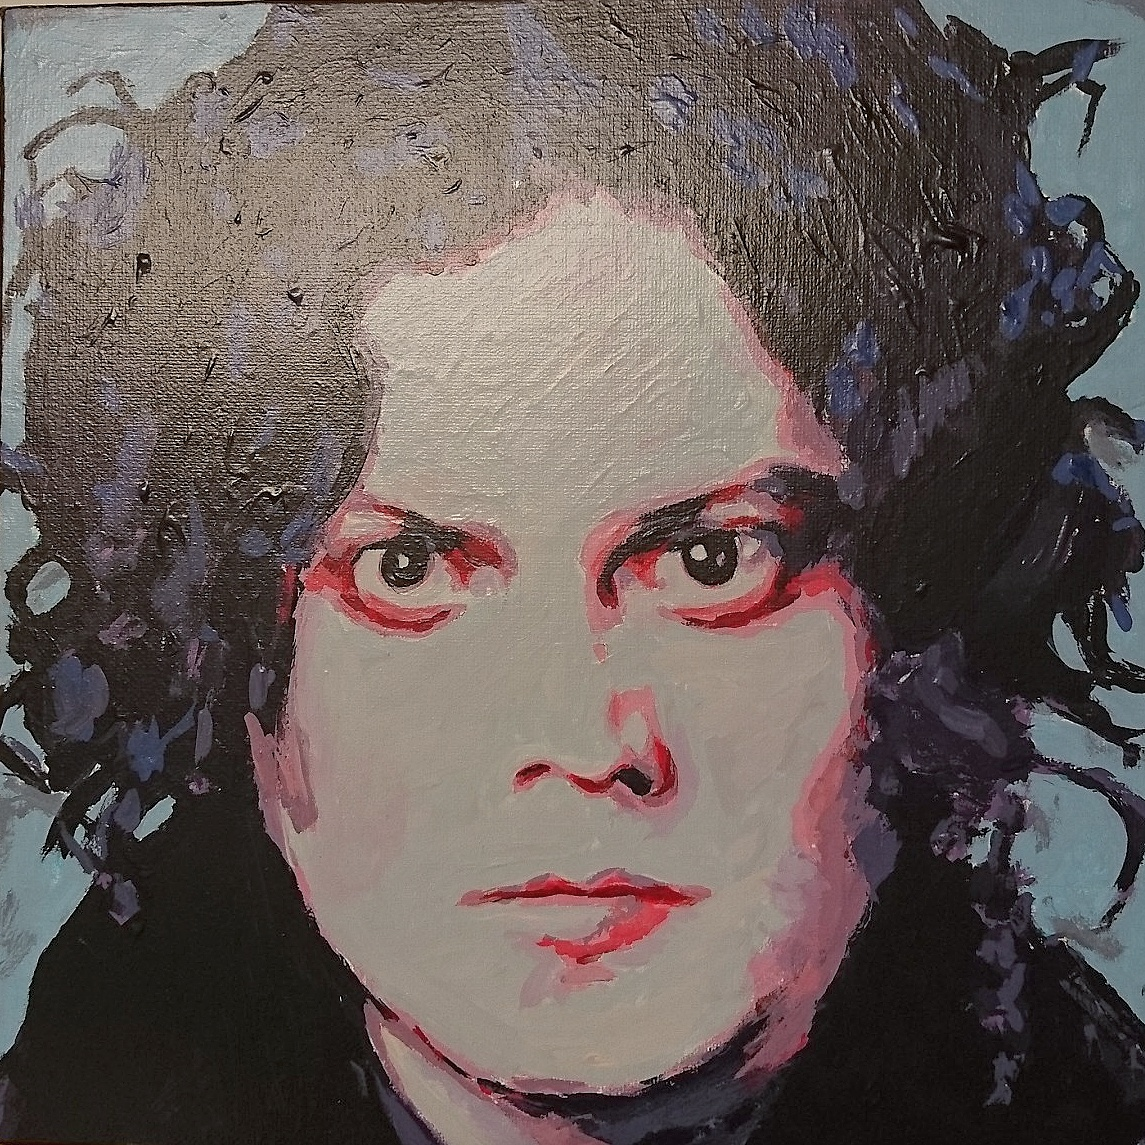 Jack White, White Stripes, The Raconteurs, The Dead Weather